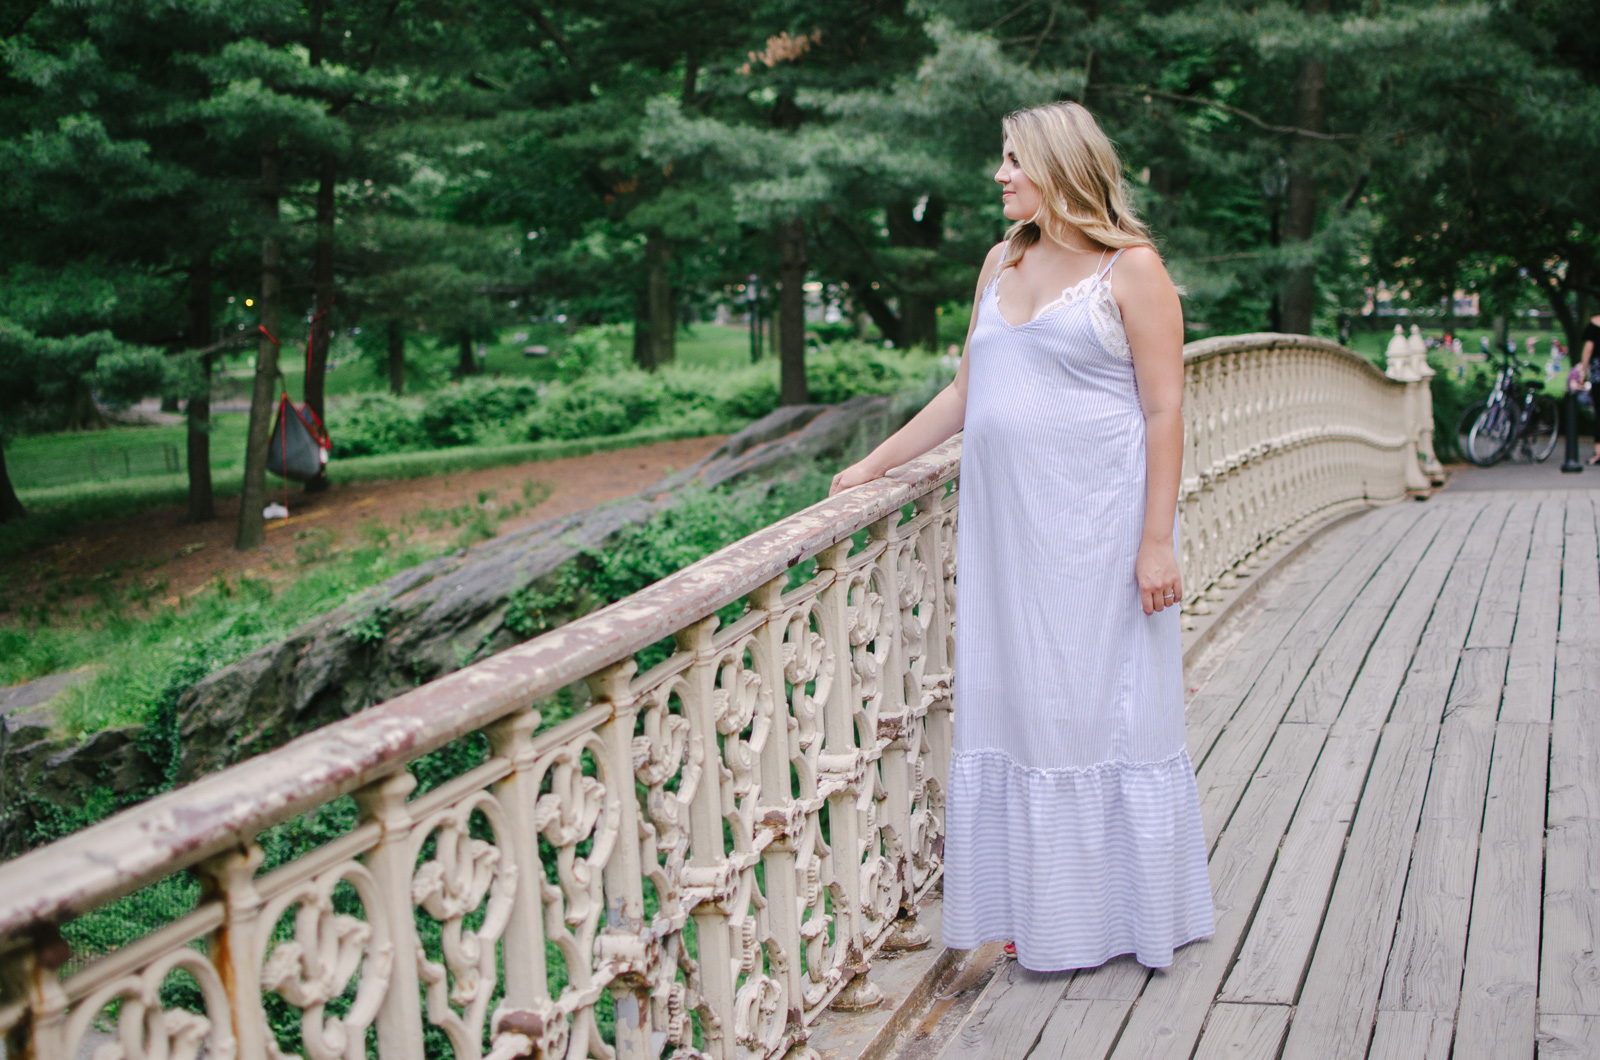 my fav summer pregnancy outfit - I've been living in maxi dresses over my summer pregnancy! See why this is a fav at bylaurenm.com!